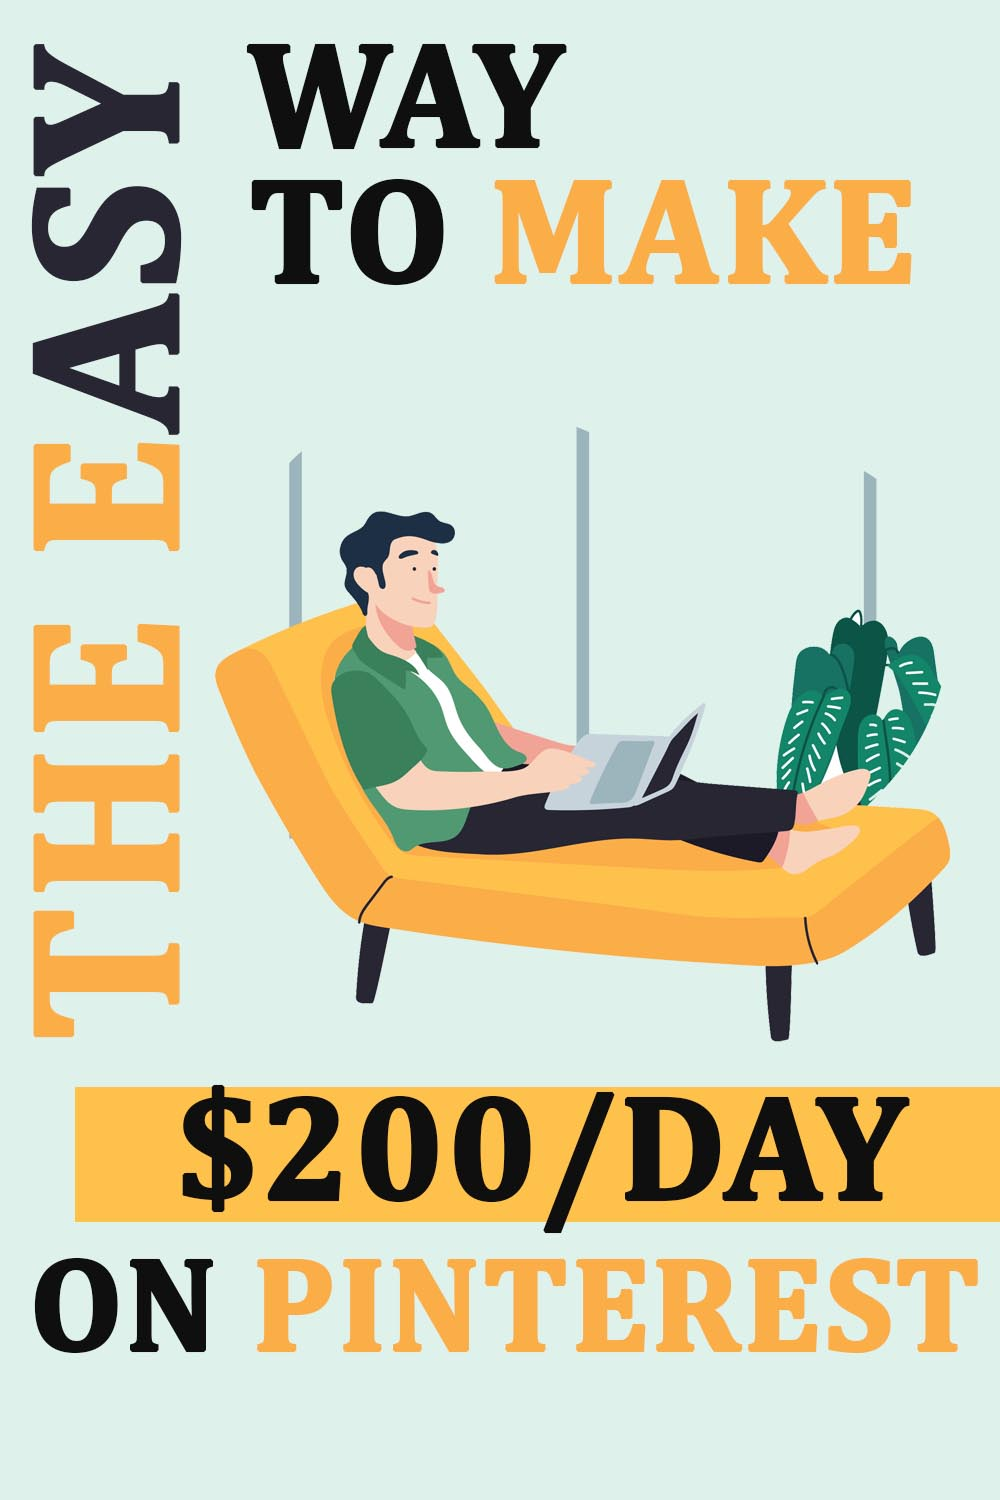 The Easy Way To Make $200/day on Pinterest